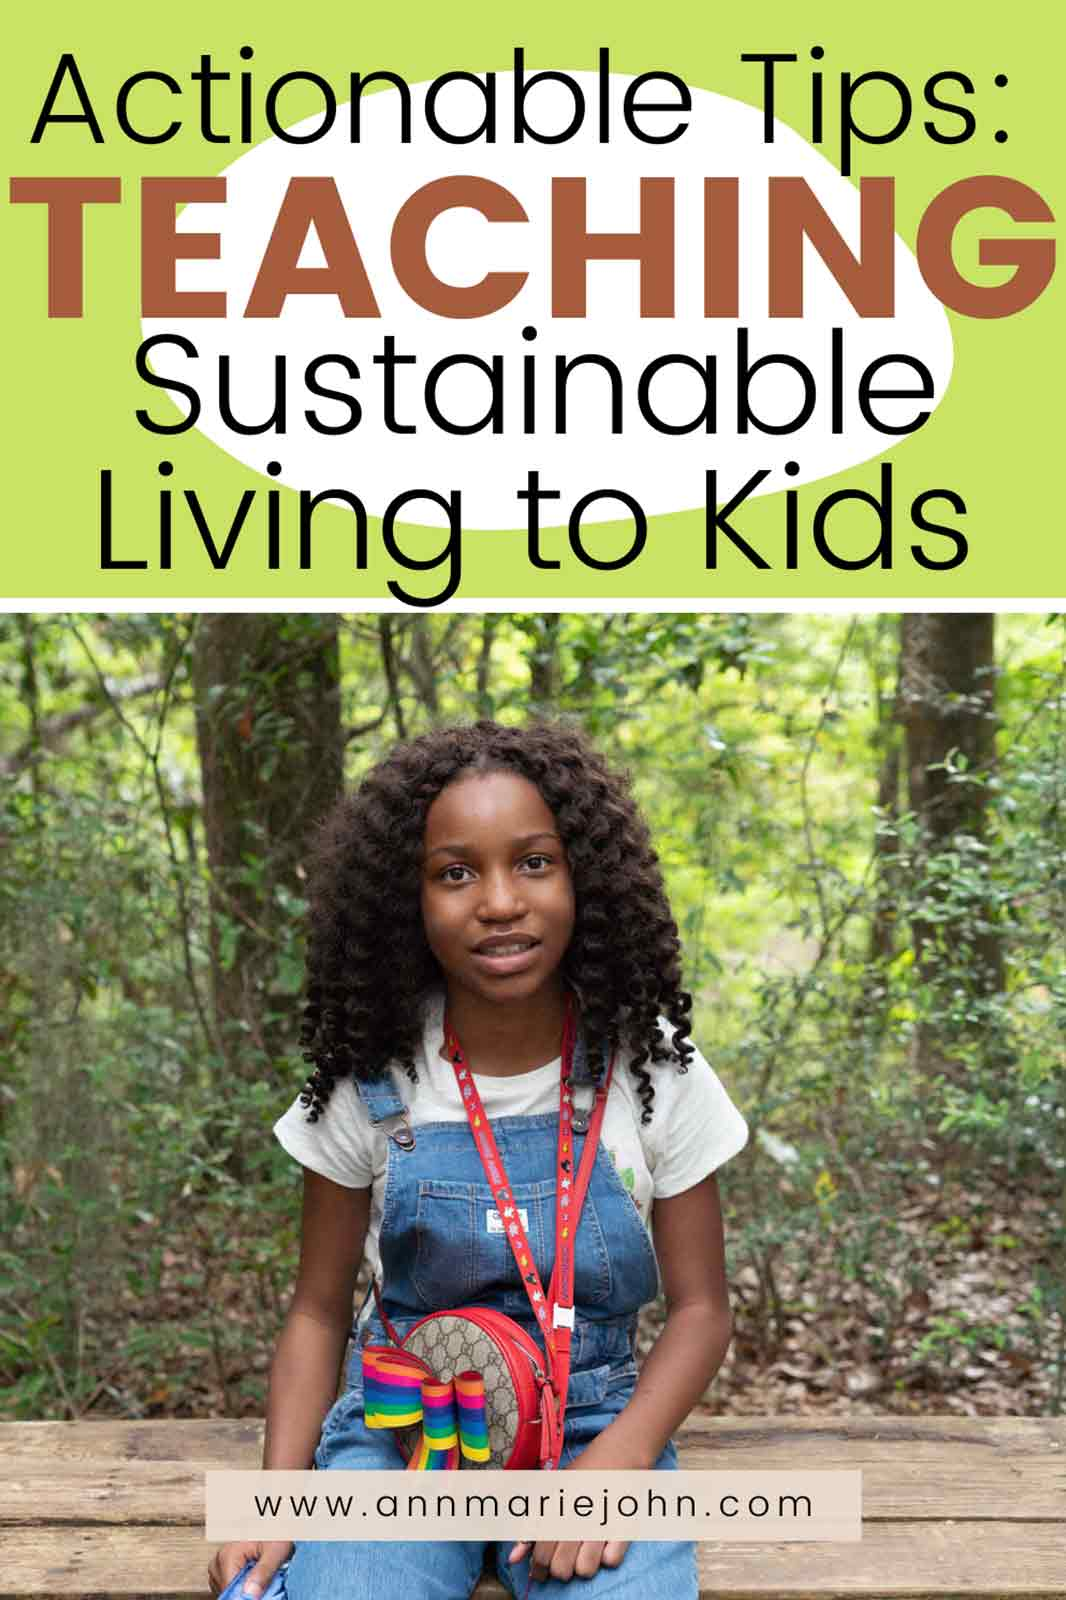 Teaching Sustainable Living to Kids